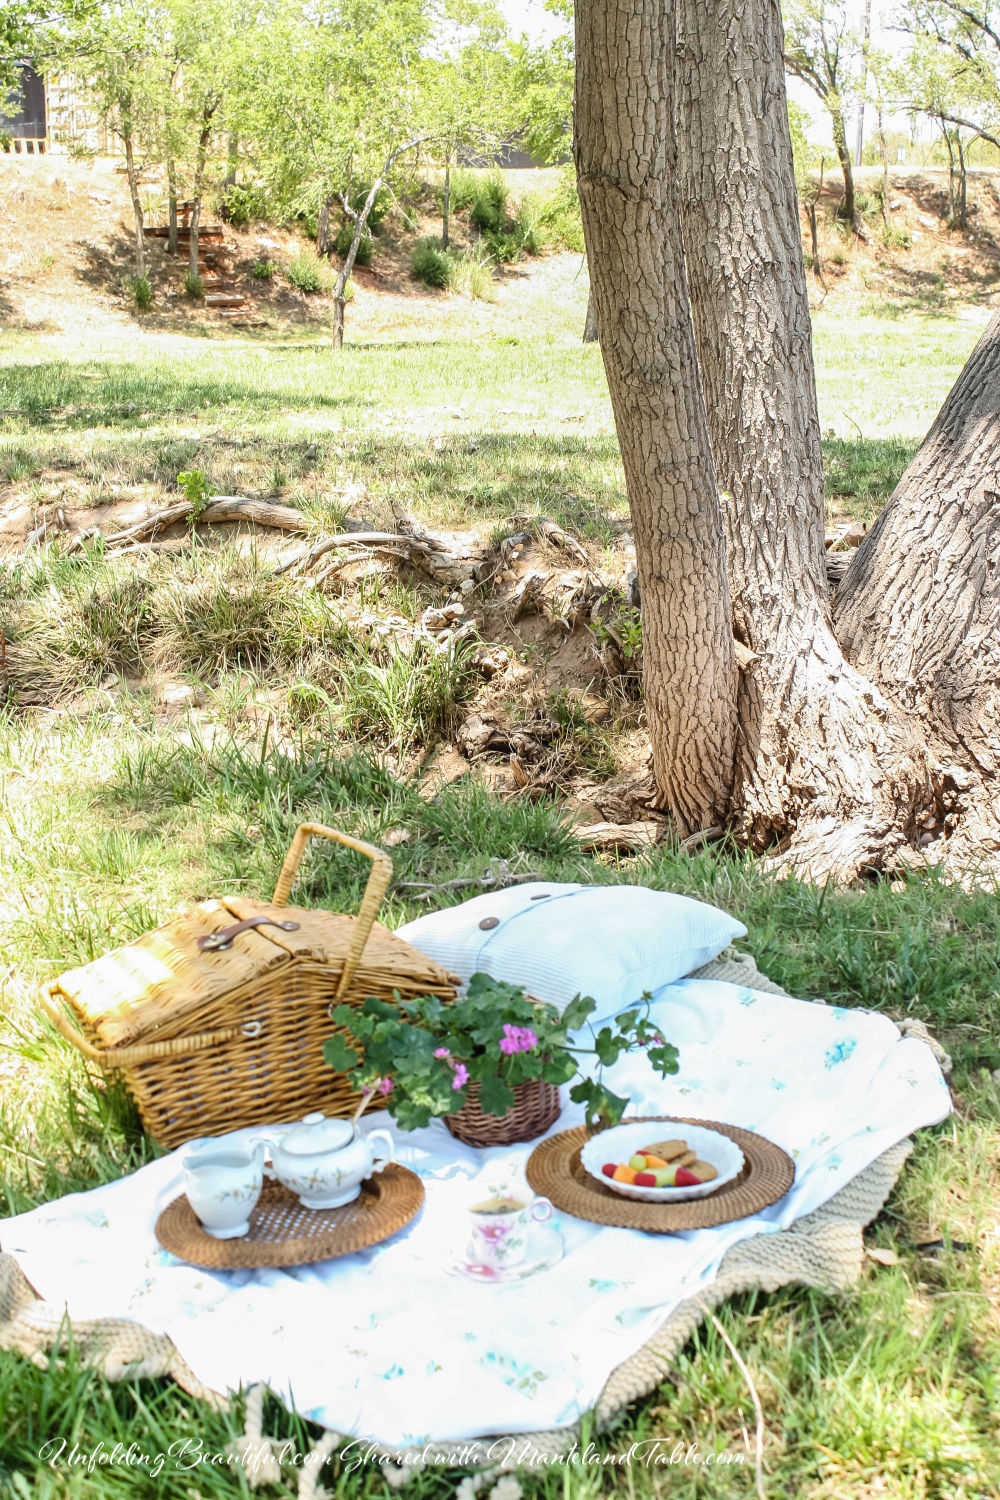 Picnic blanket under tree with basket and tea set